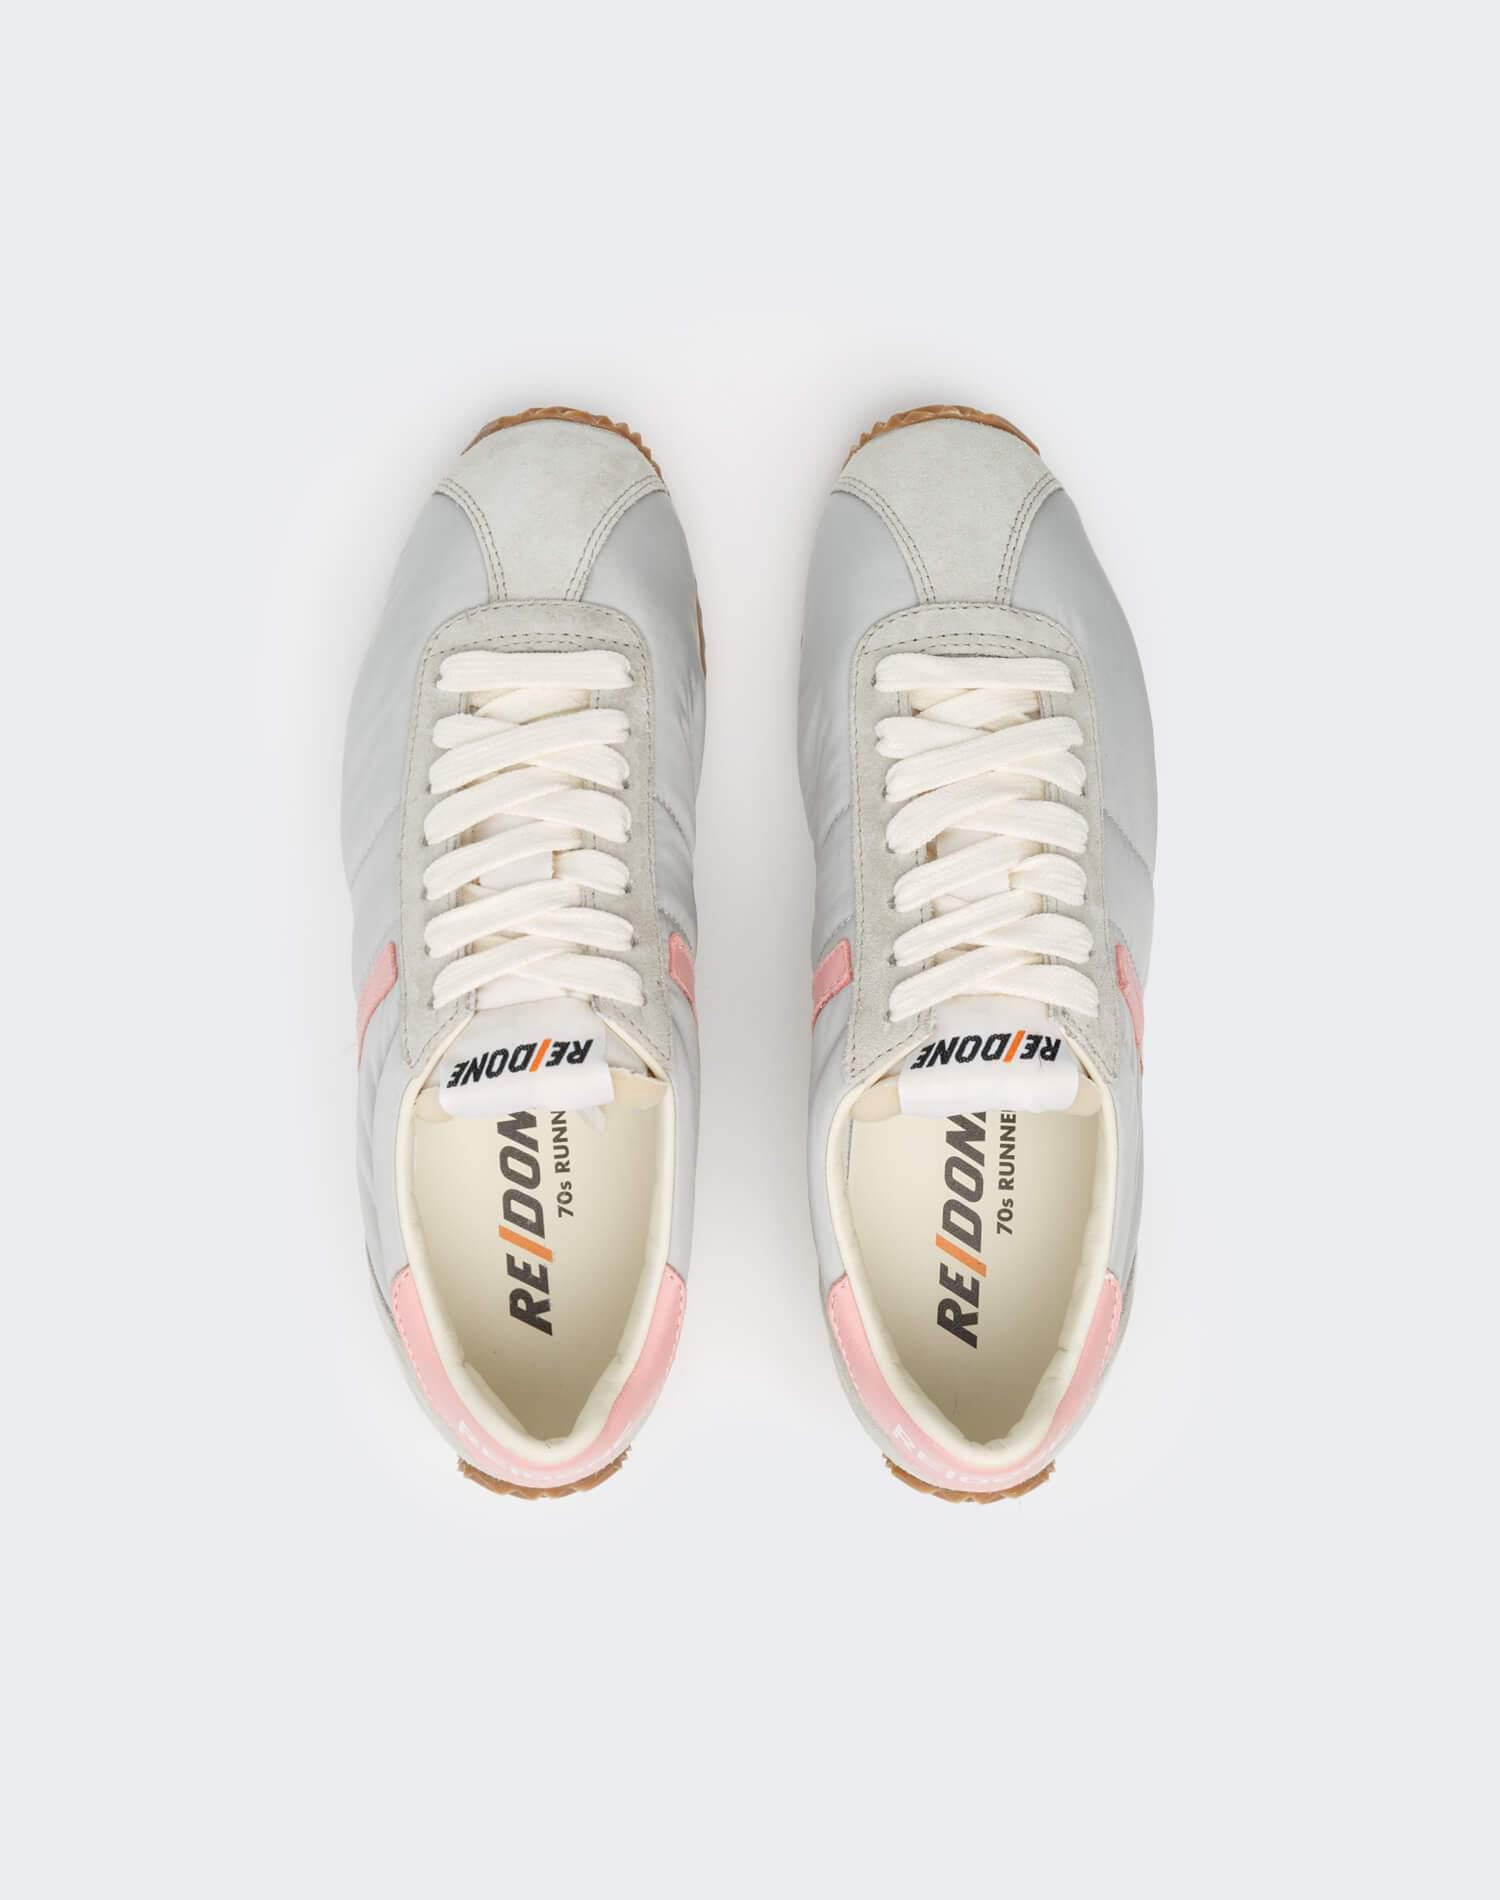 70s Runner Shoe - Light Grey and Pink 2